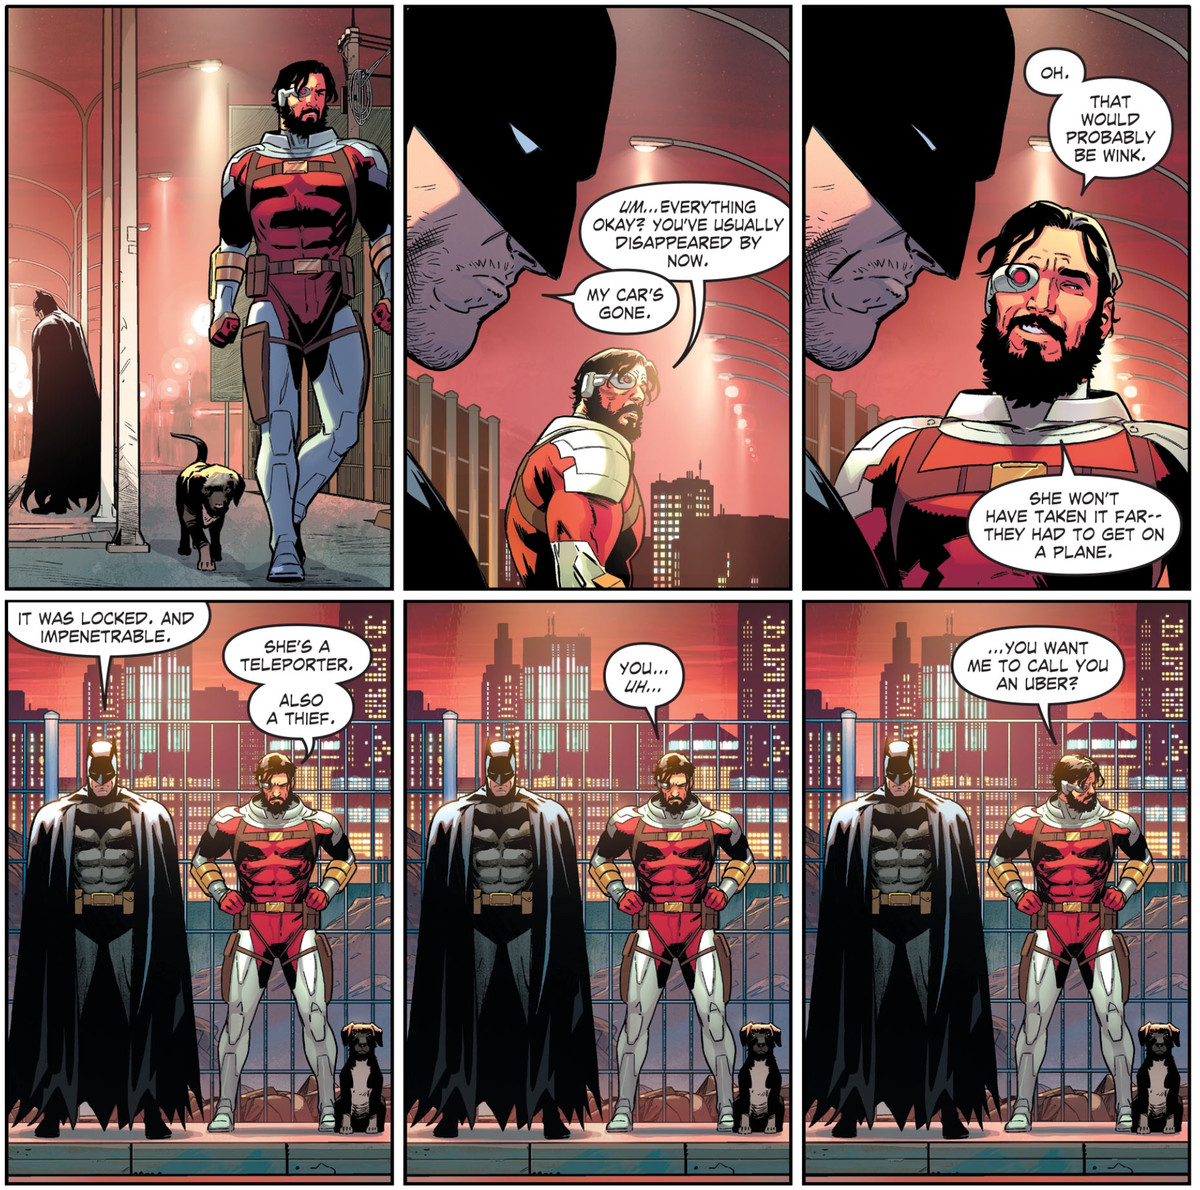 """Deadshots former Suicide Squad coworkers have stolen the Batmobile. """"You... uh..."""" he says to Batman, """"You want me to call you an Uber?"""" in Sucide Squad #6, DC Comics (2020)."""